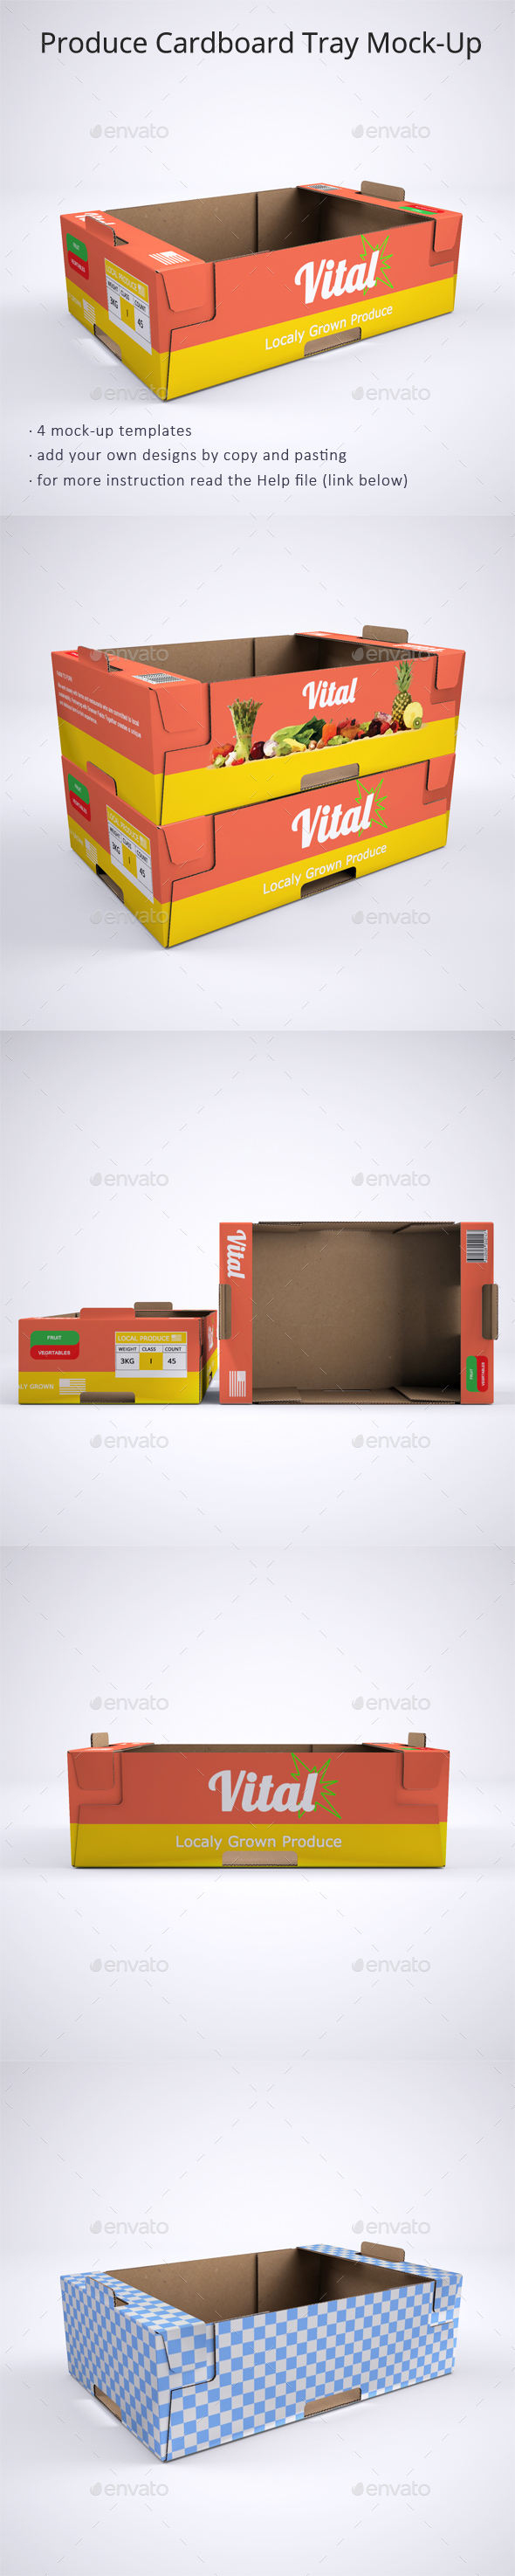 Produce Cardboard Tray or Box Mock-Up - Packaging Product Mock-Ups